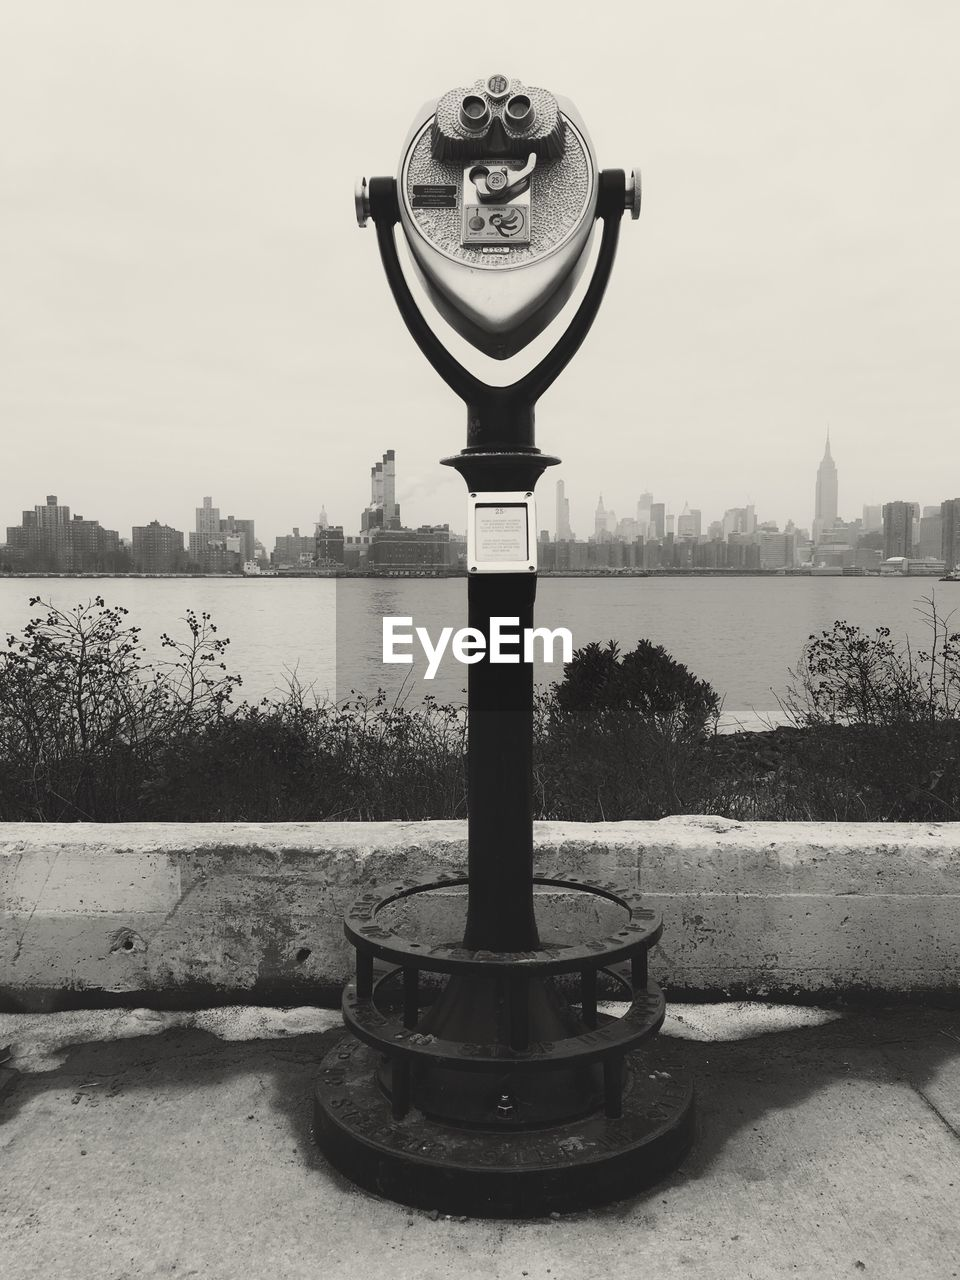 water, binoculars, architecture, sky, coin operated, river, nature, day, built structure, city, coin-operated binoculars, building exterior, no people, metal, outdoors, security, observation point, railing, clear sky, hand-held telescope